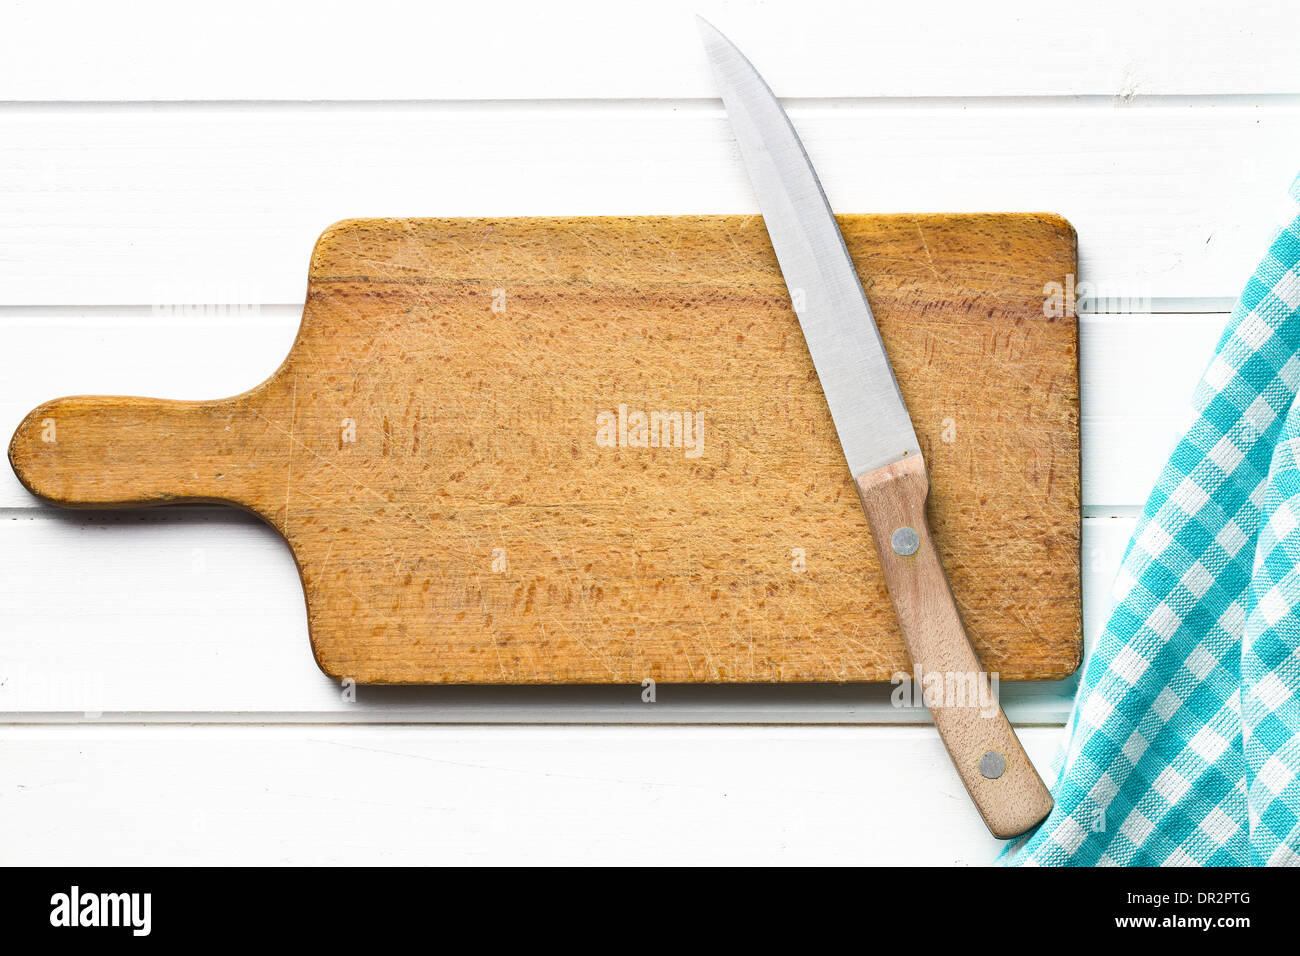 top view of cutting board with knife on white wooden table - Stock Image